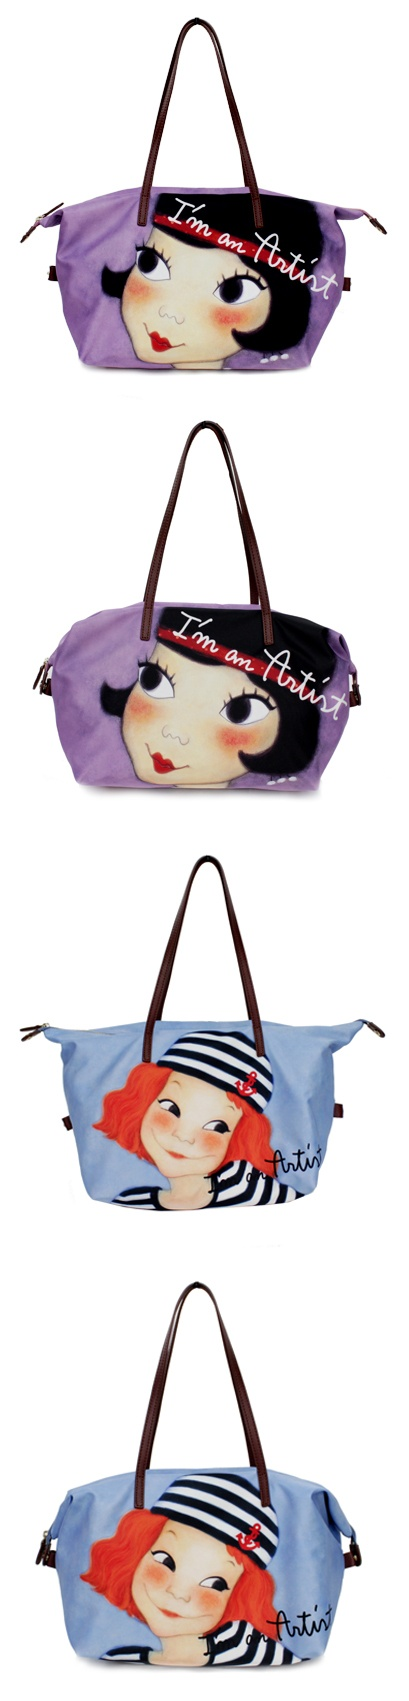 #shoulderbag Witty Bonny Bag www.youk.co.kr